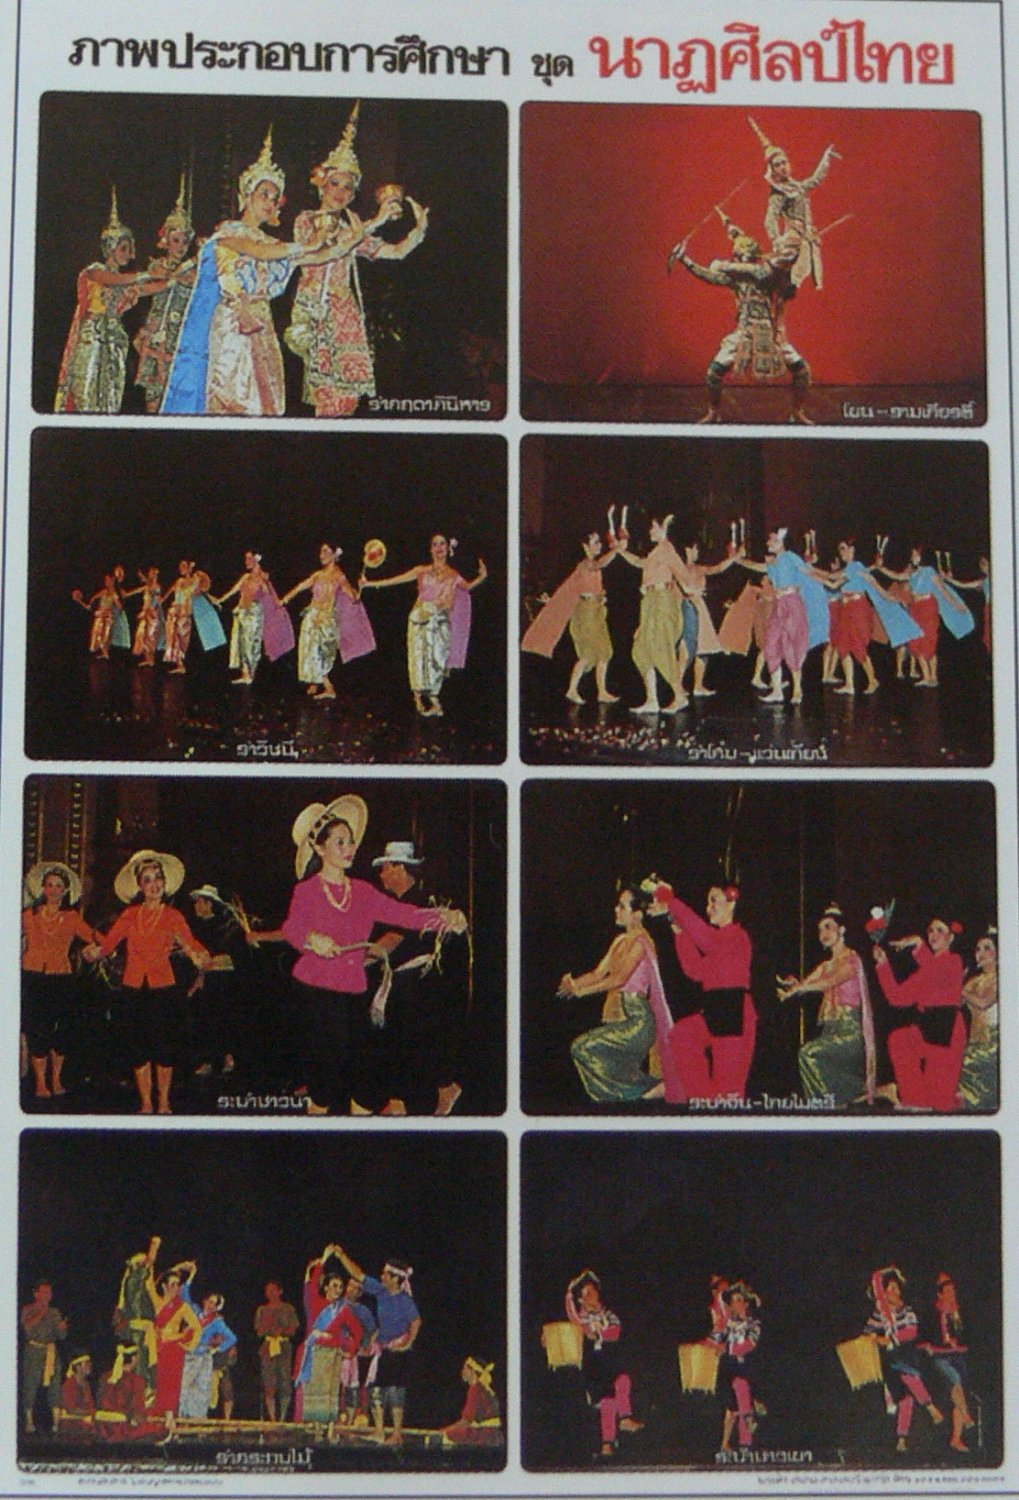 Thai Origin Tradition Style Dancing Play Art Poster Bamboo Rice Fan Candle Dance